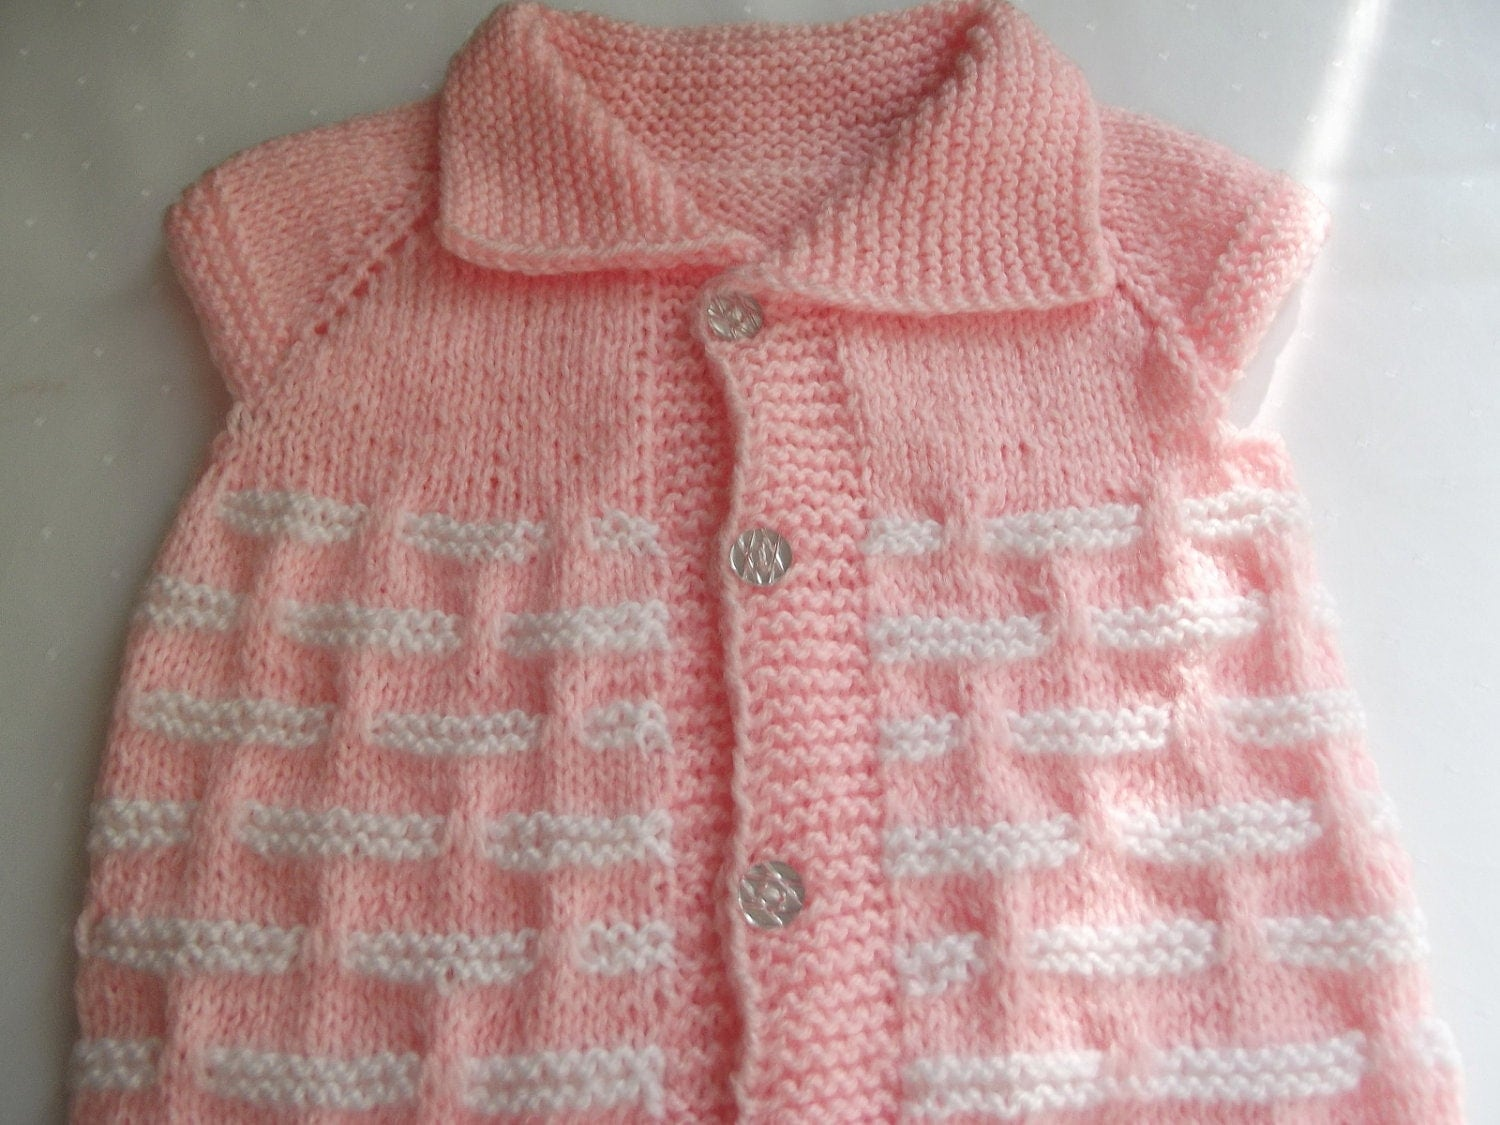 Knitting Pattern Baby Undershirt : Handmade Knitting Pattern...Knitting Baby Vest... by Vestberet